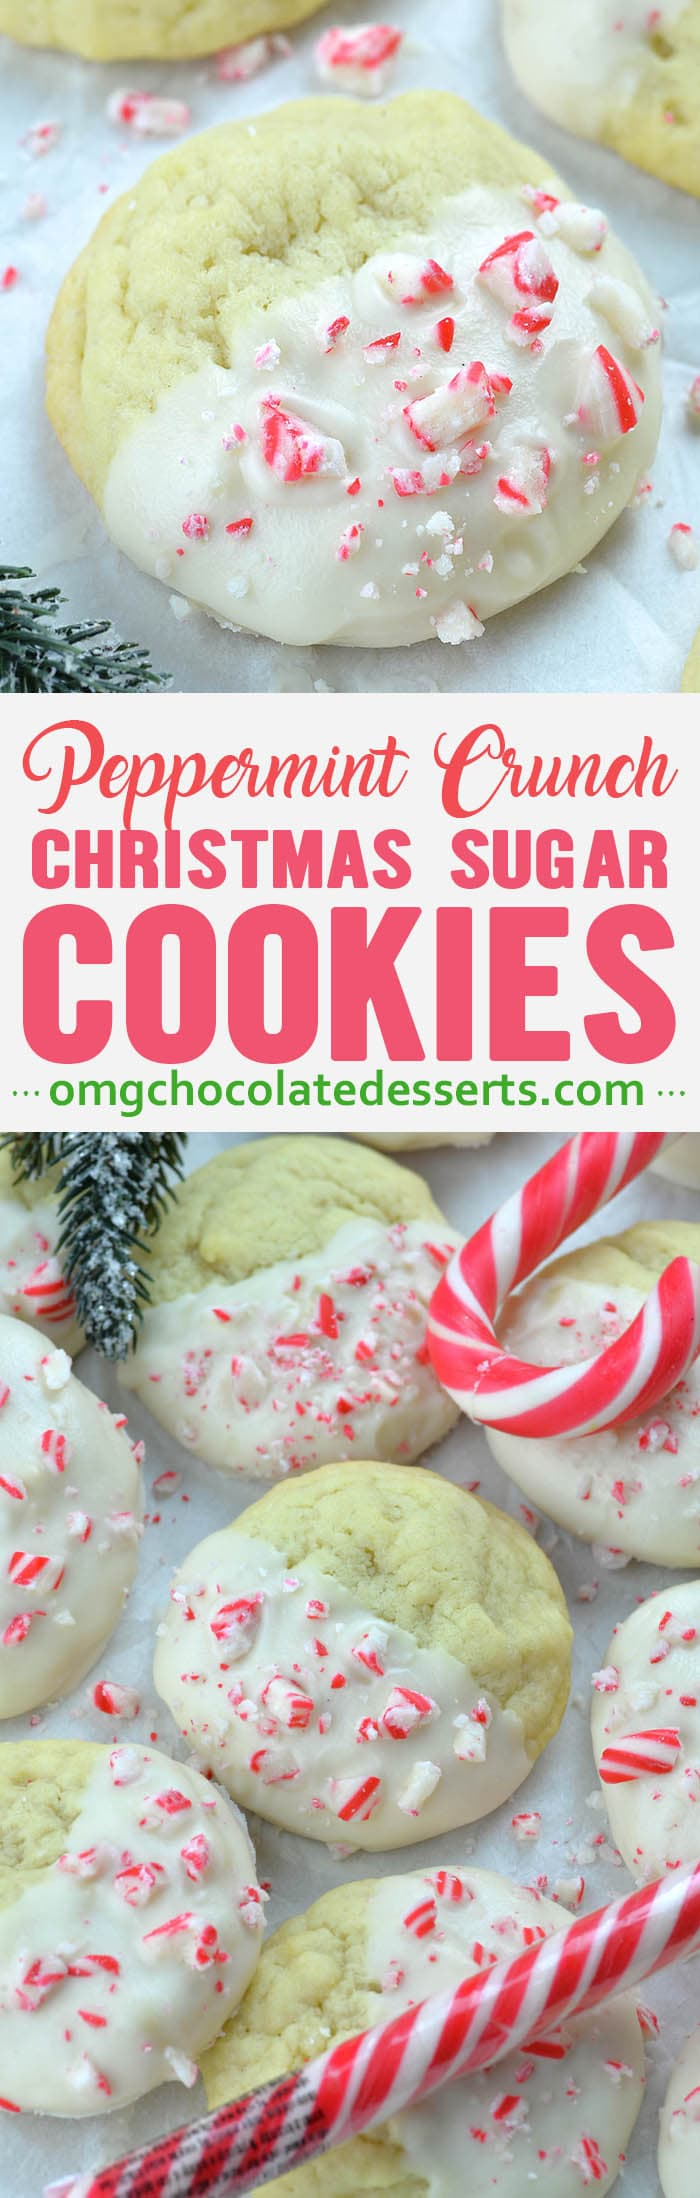 Peppermint Crunch Sugar Cookies Omg Chocolate Desserts